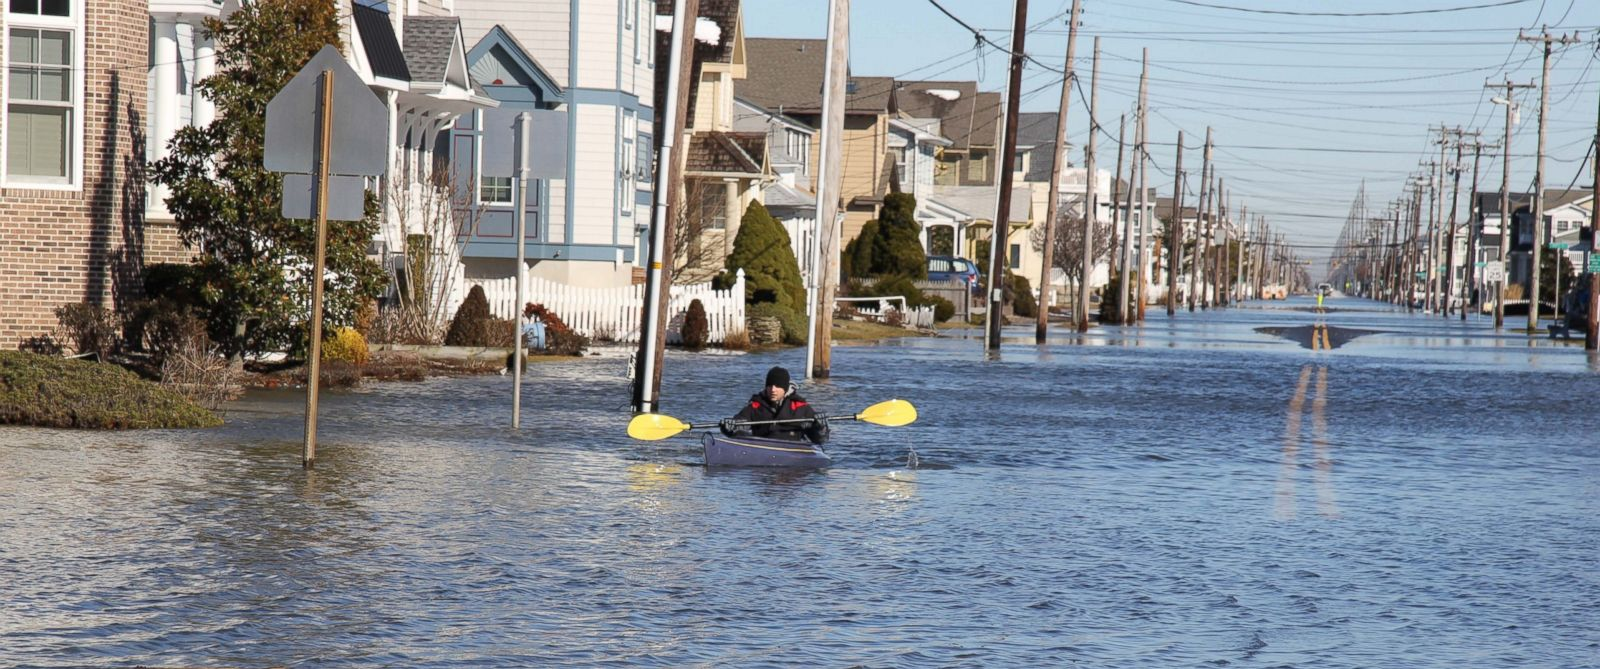 Severe Flooding Devastates Jersey Shore In Wake Of Historic Snowstorm Abc News